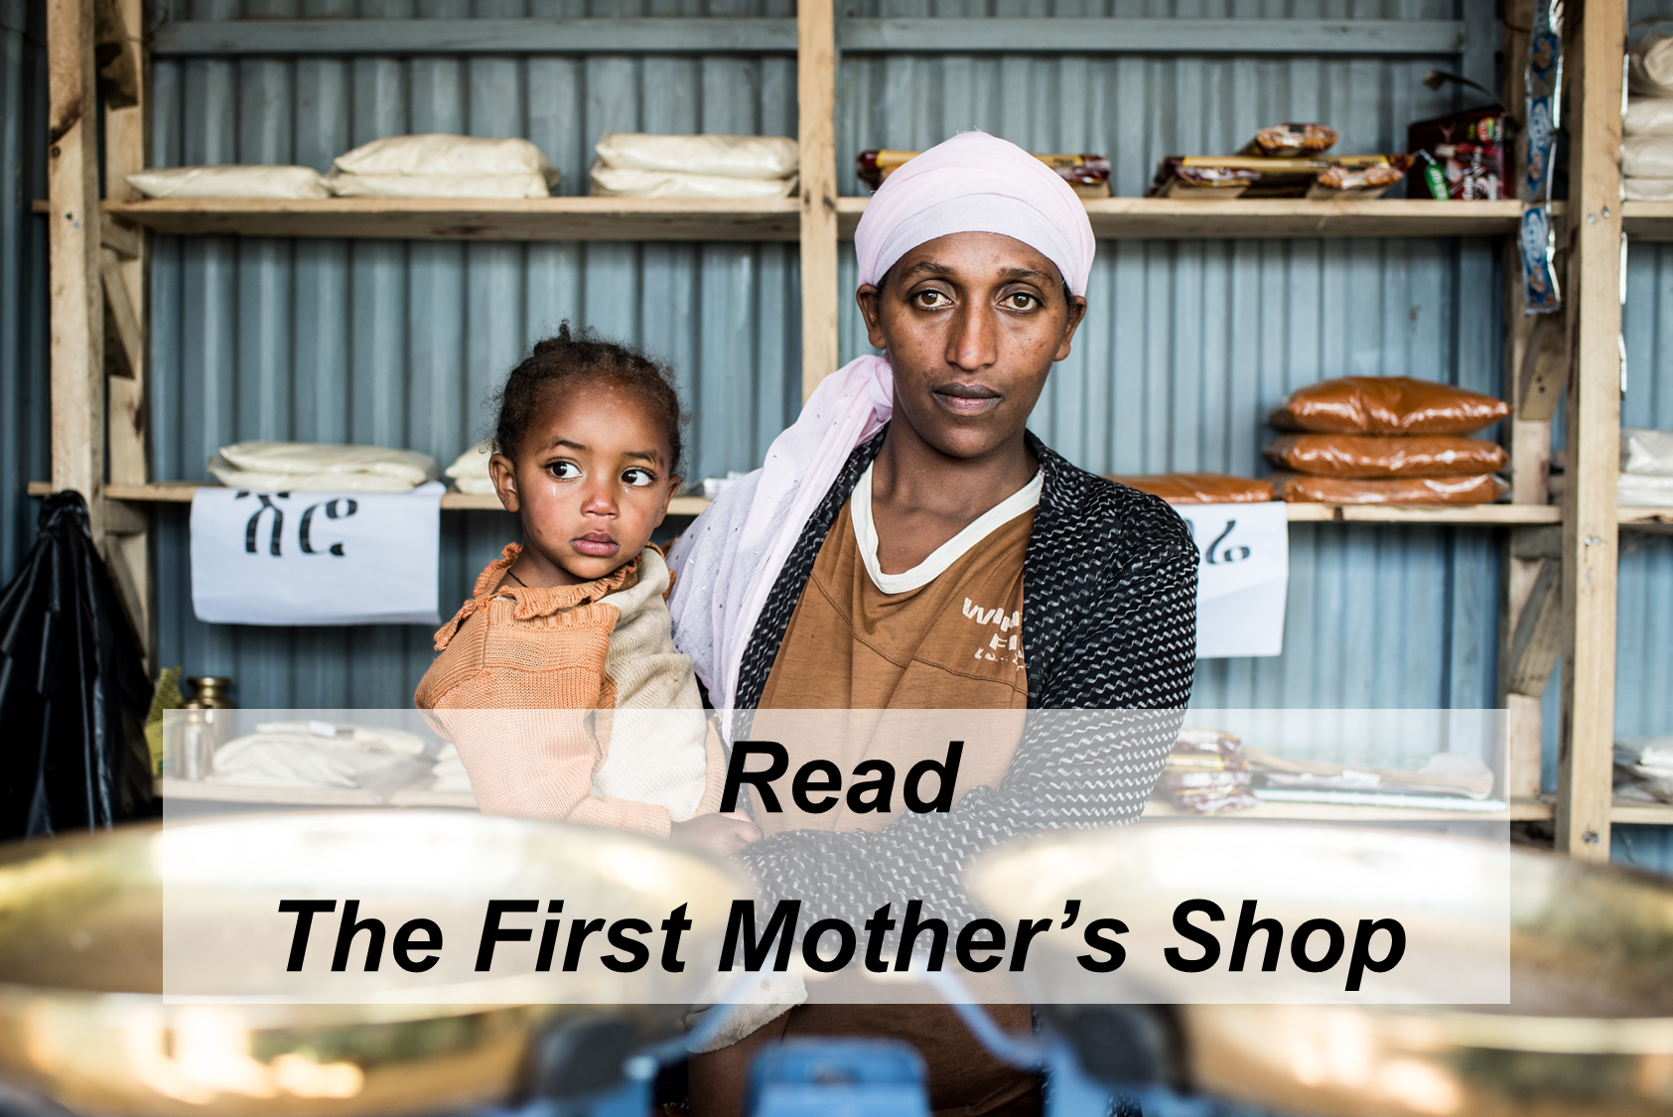 First Mother shop in Ethiopia